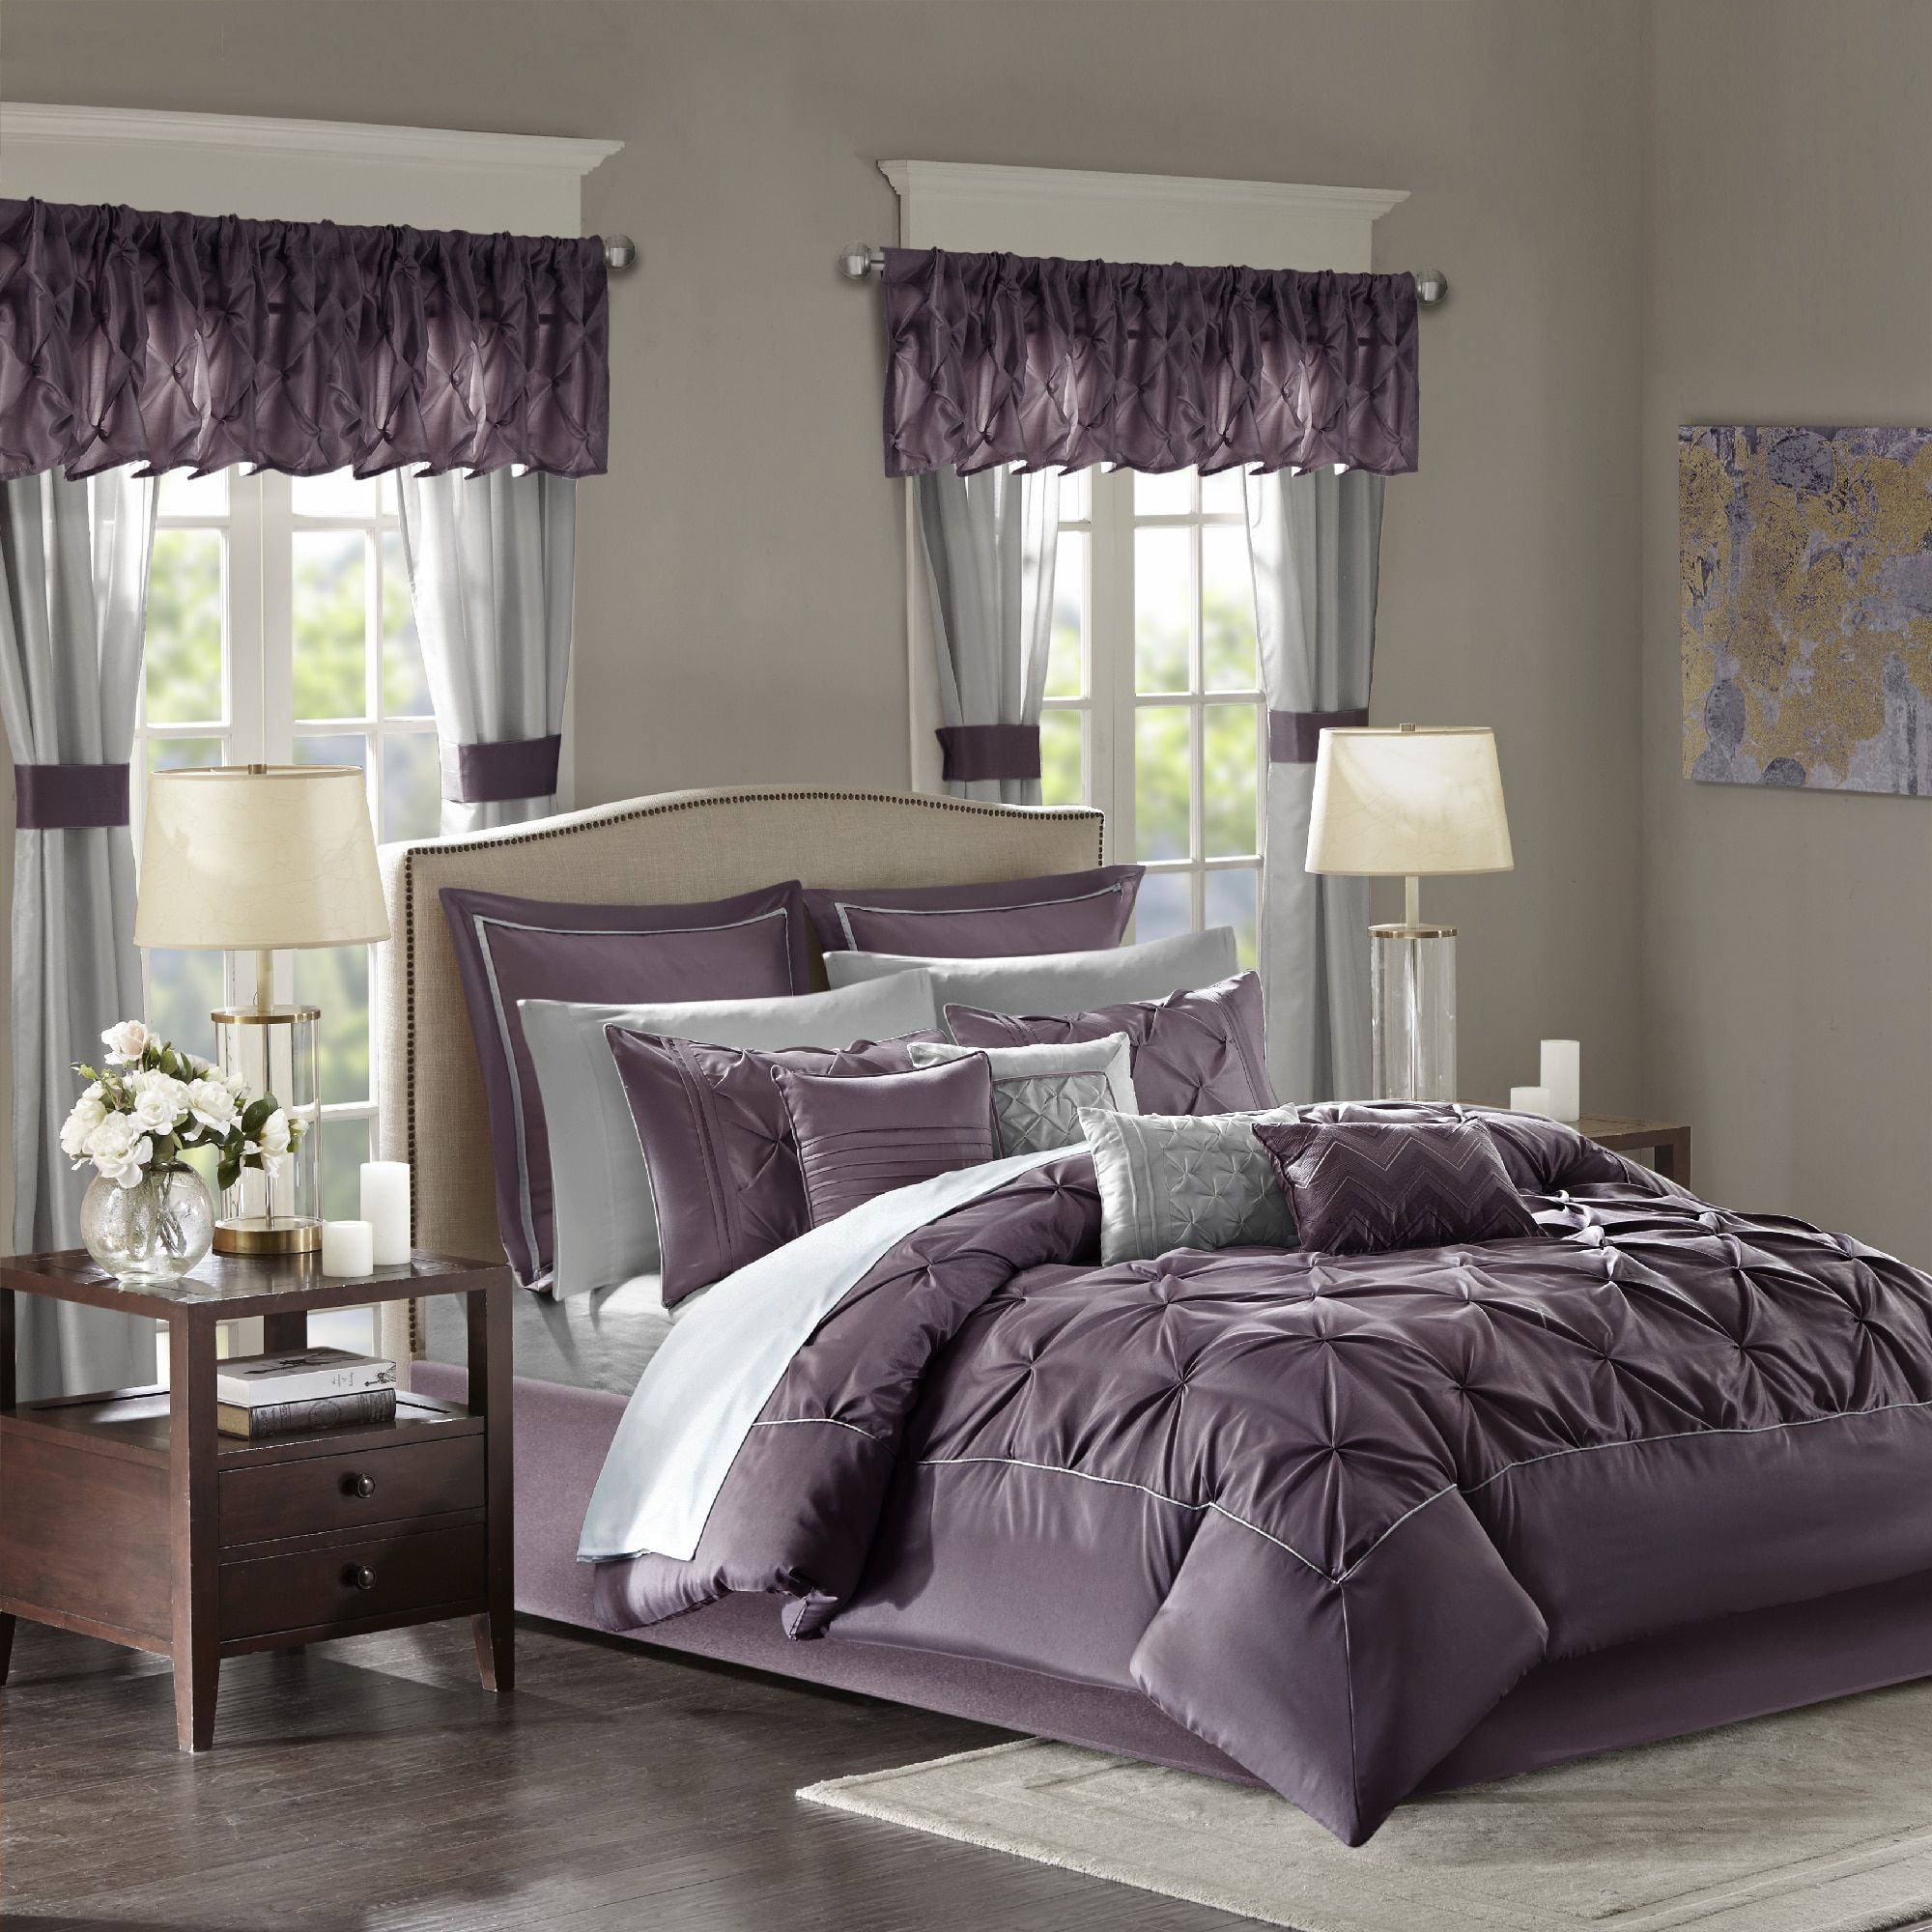 bath today polyester in with set a bag traditional overstock free piece sheet room product bedding amaryllis shipping